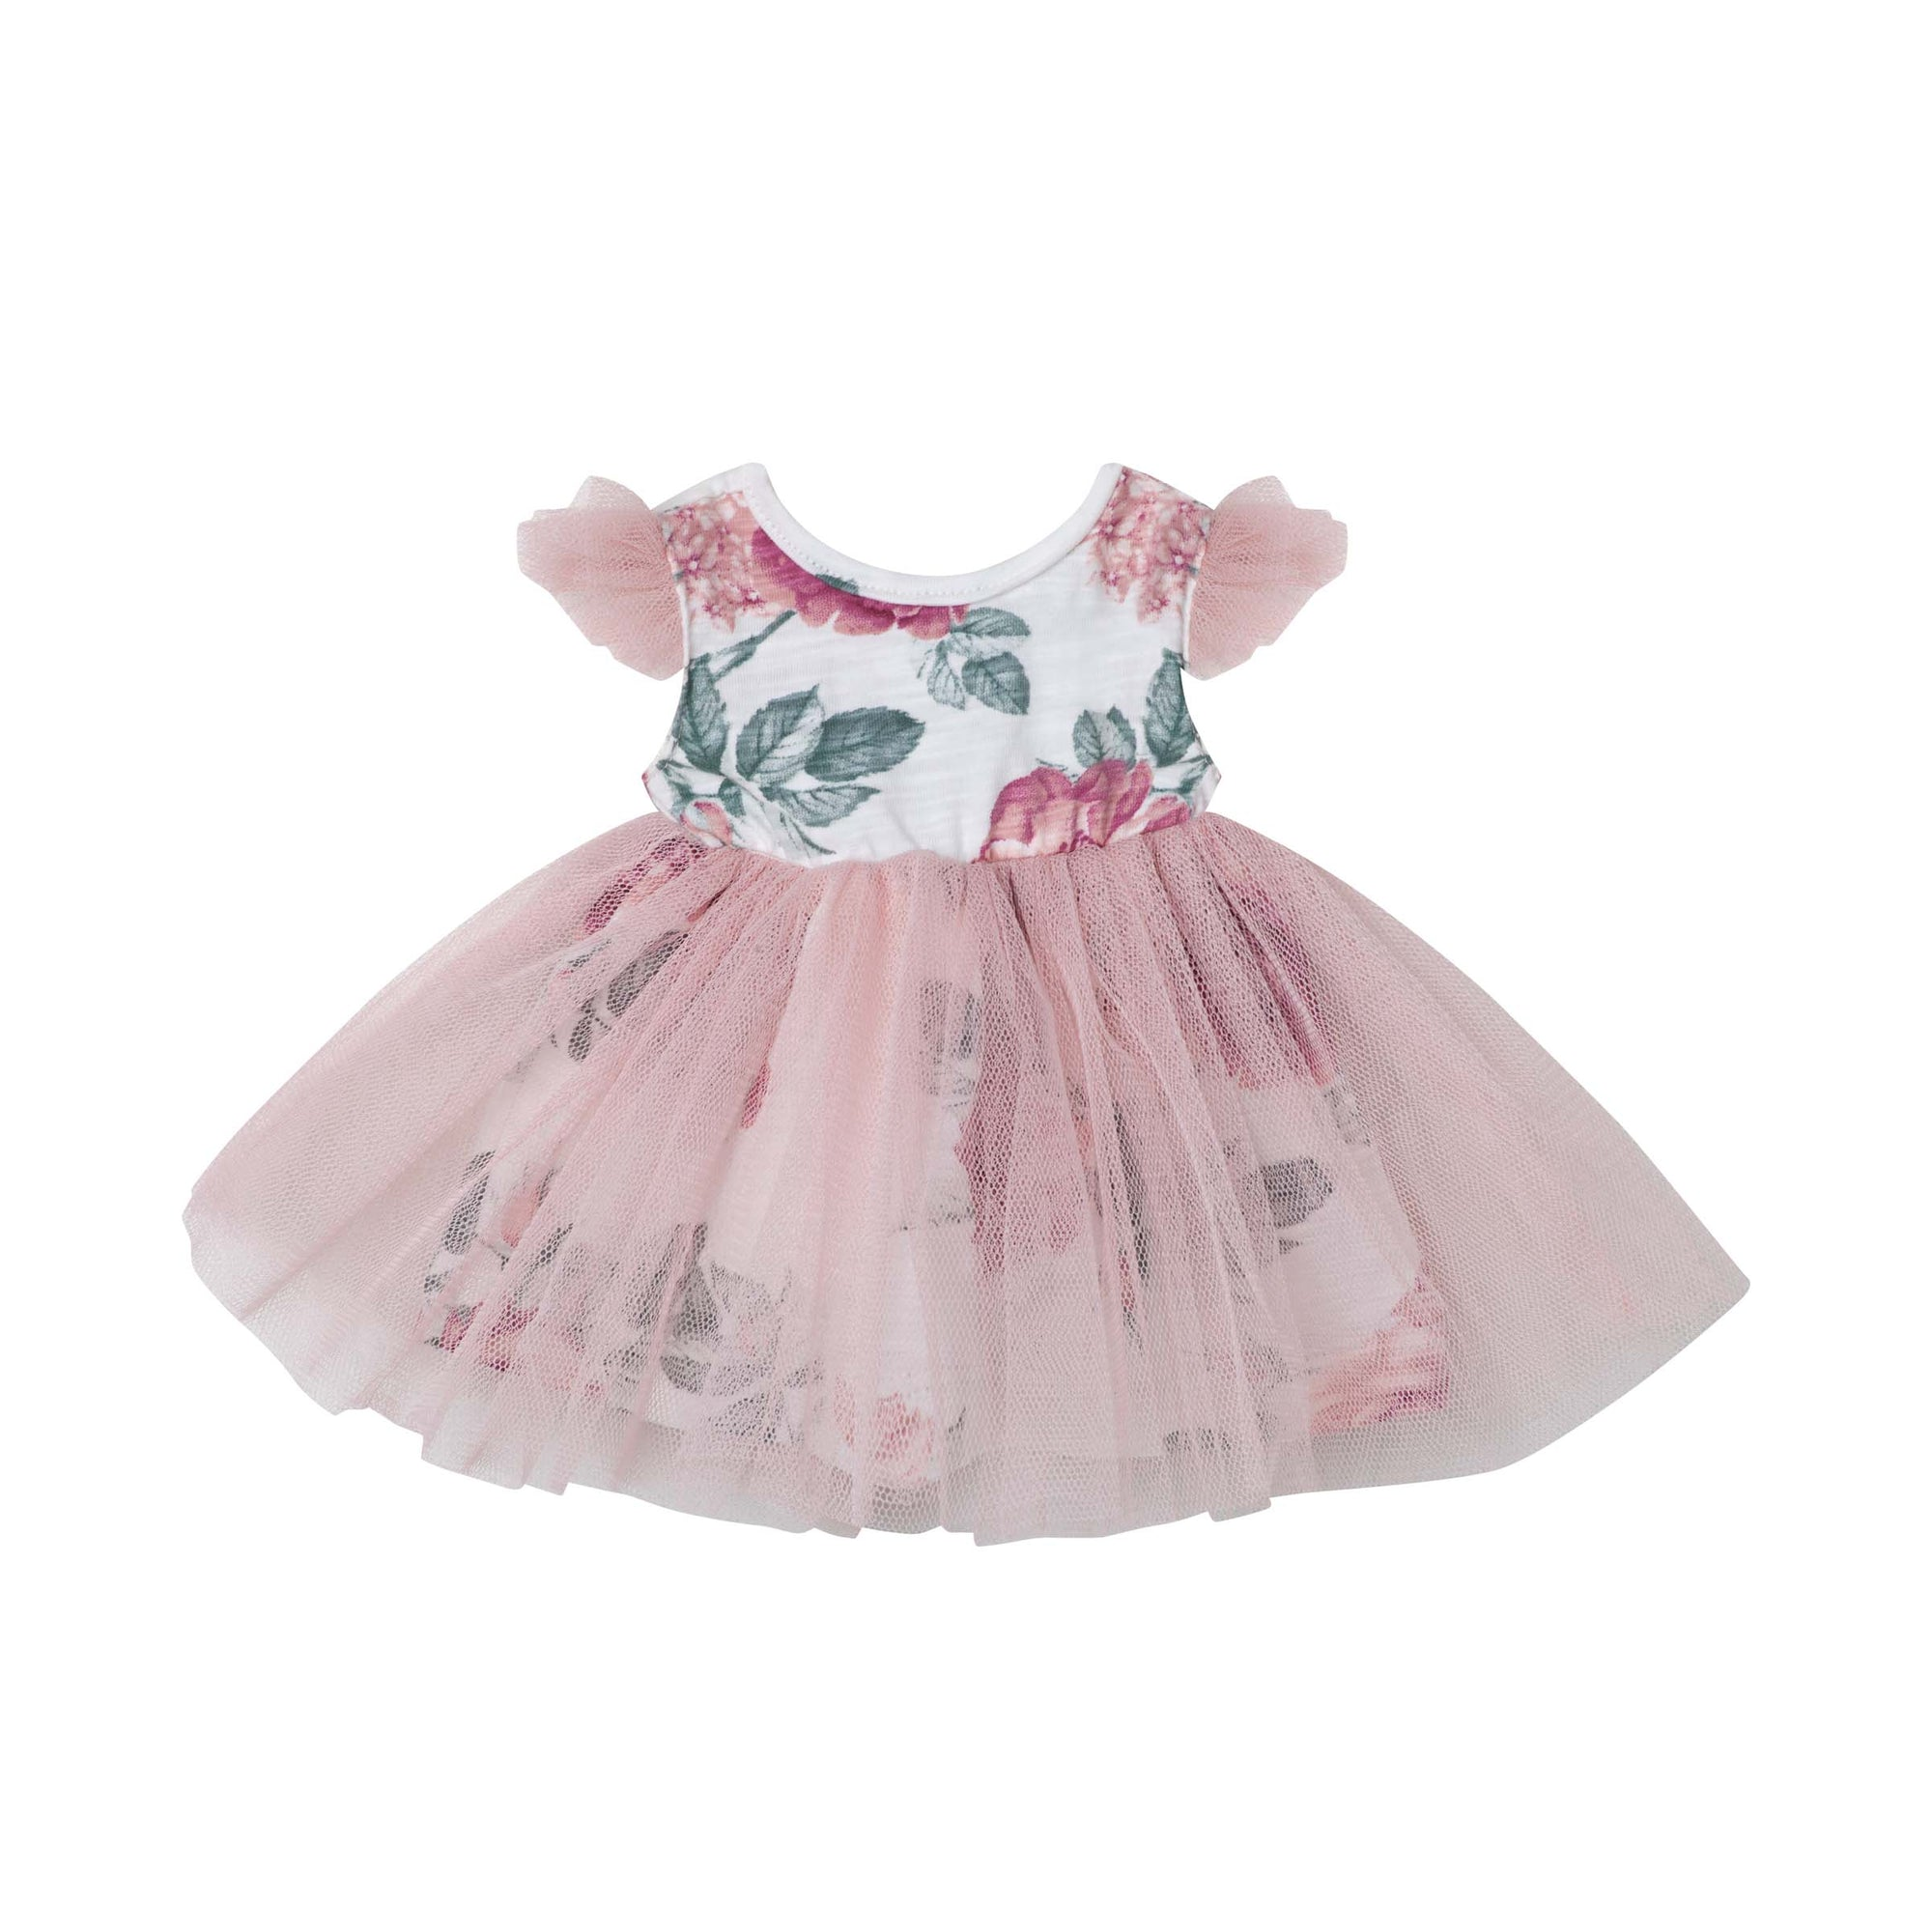 Buy Audrey Floral Doll Dress - Tea Rose - Designer Kidz | Special Occasions, Party Wear & Weddings  | Sizes 000-16 | Little Girls Party Dresses, Tutu Dresses, Flower Girl Dresses | Pay with Afterpay | Free AU Delivery Over $80